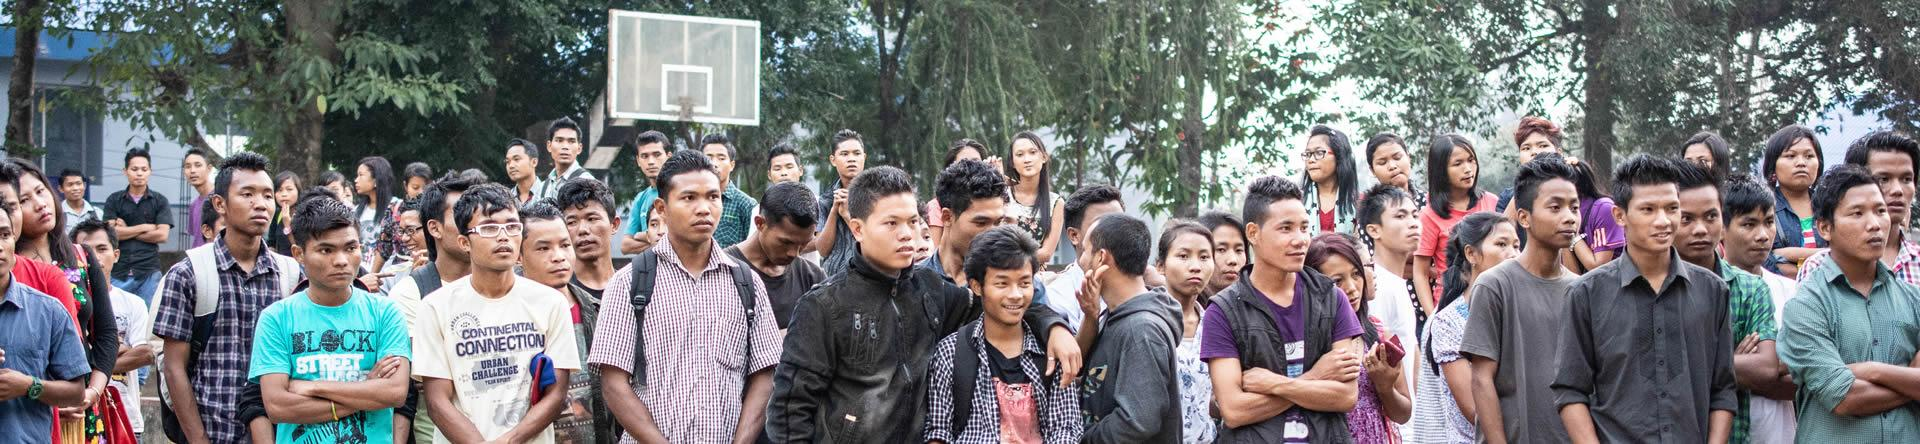 Students Gathering